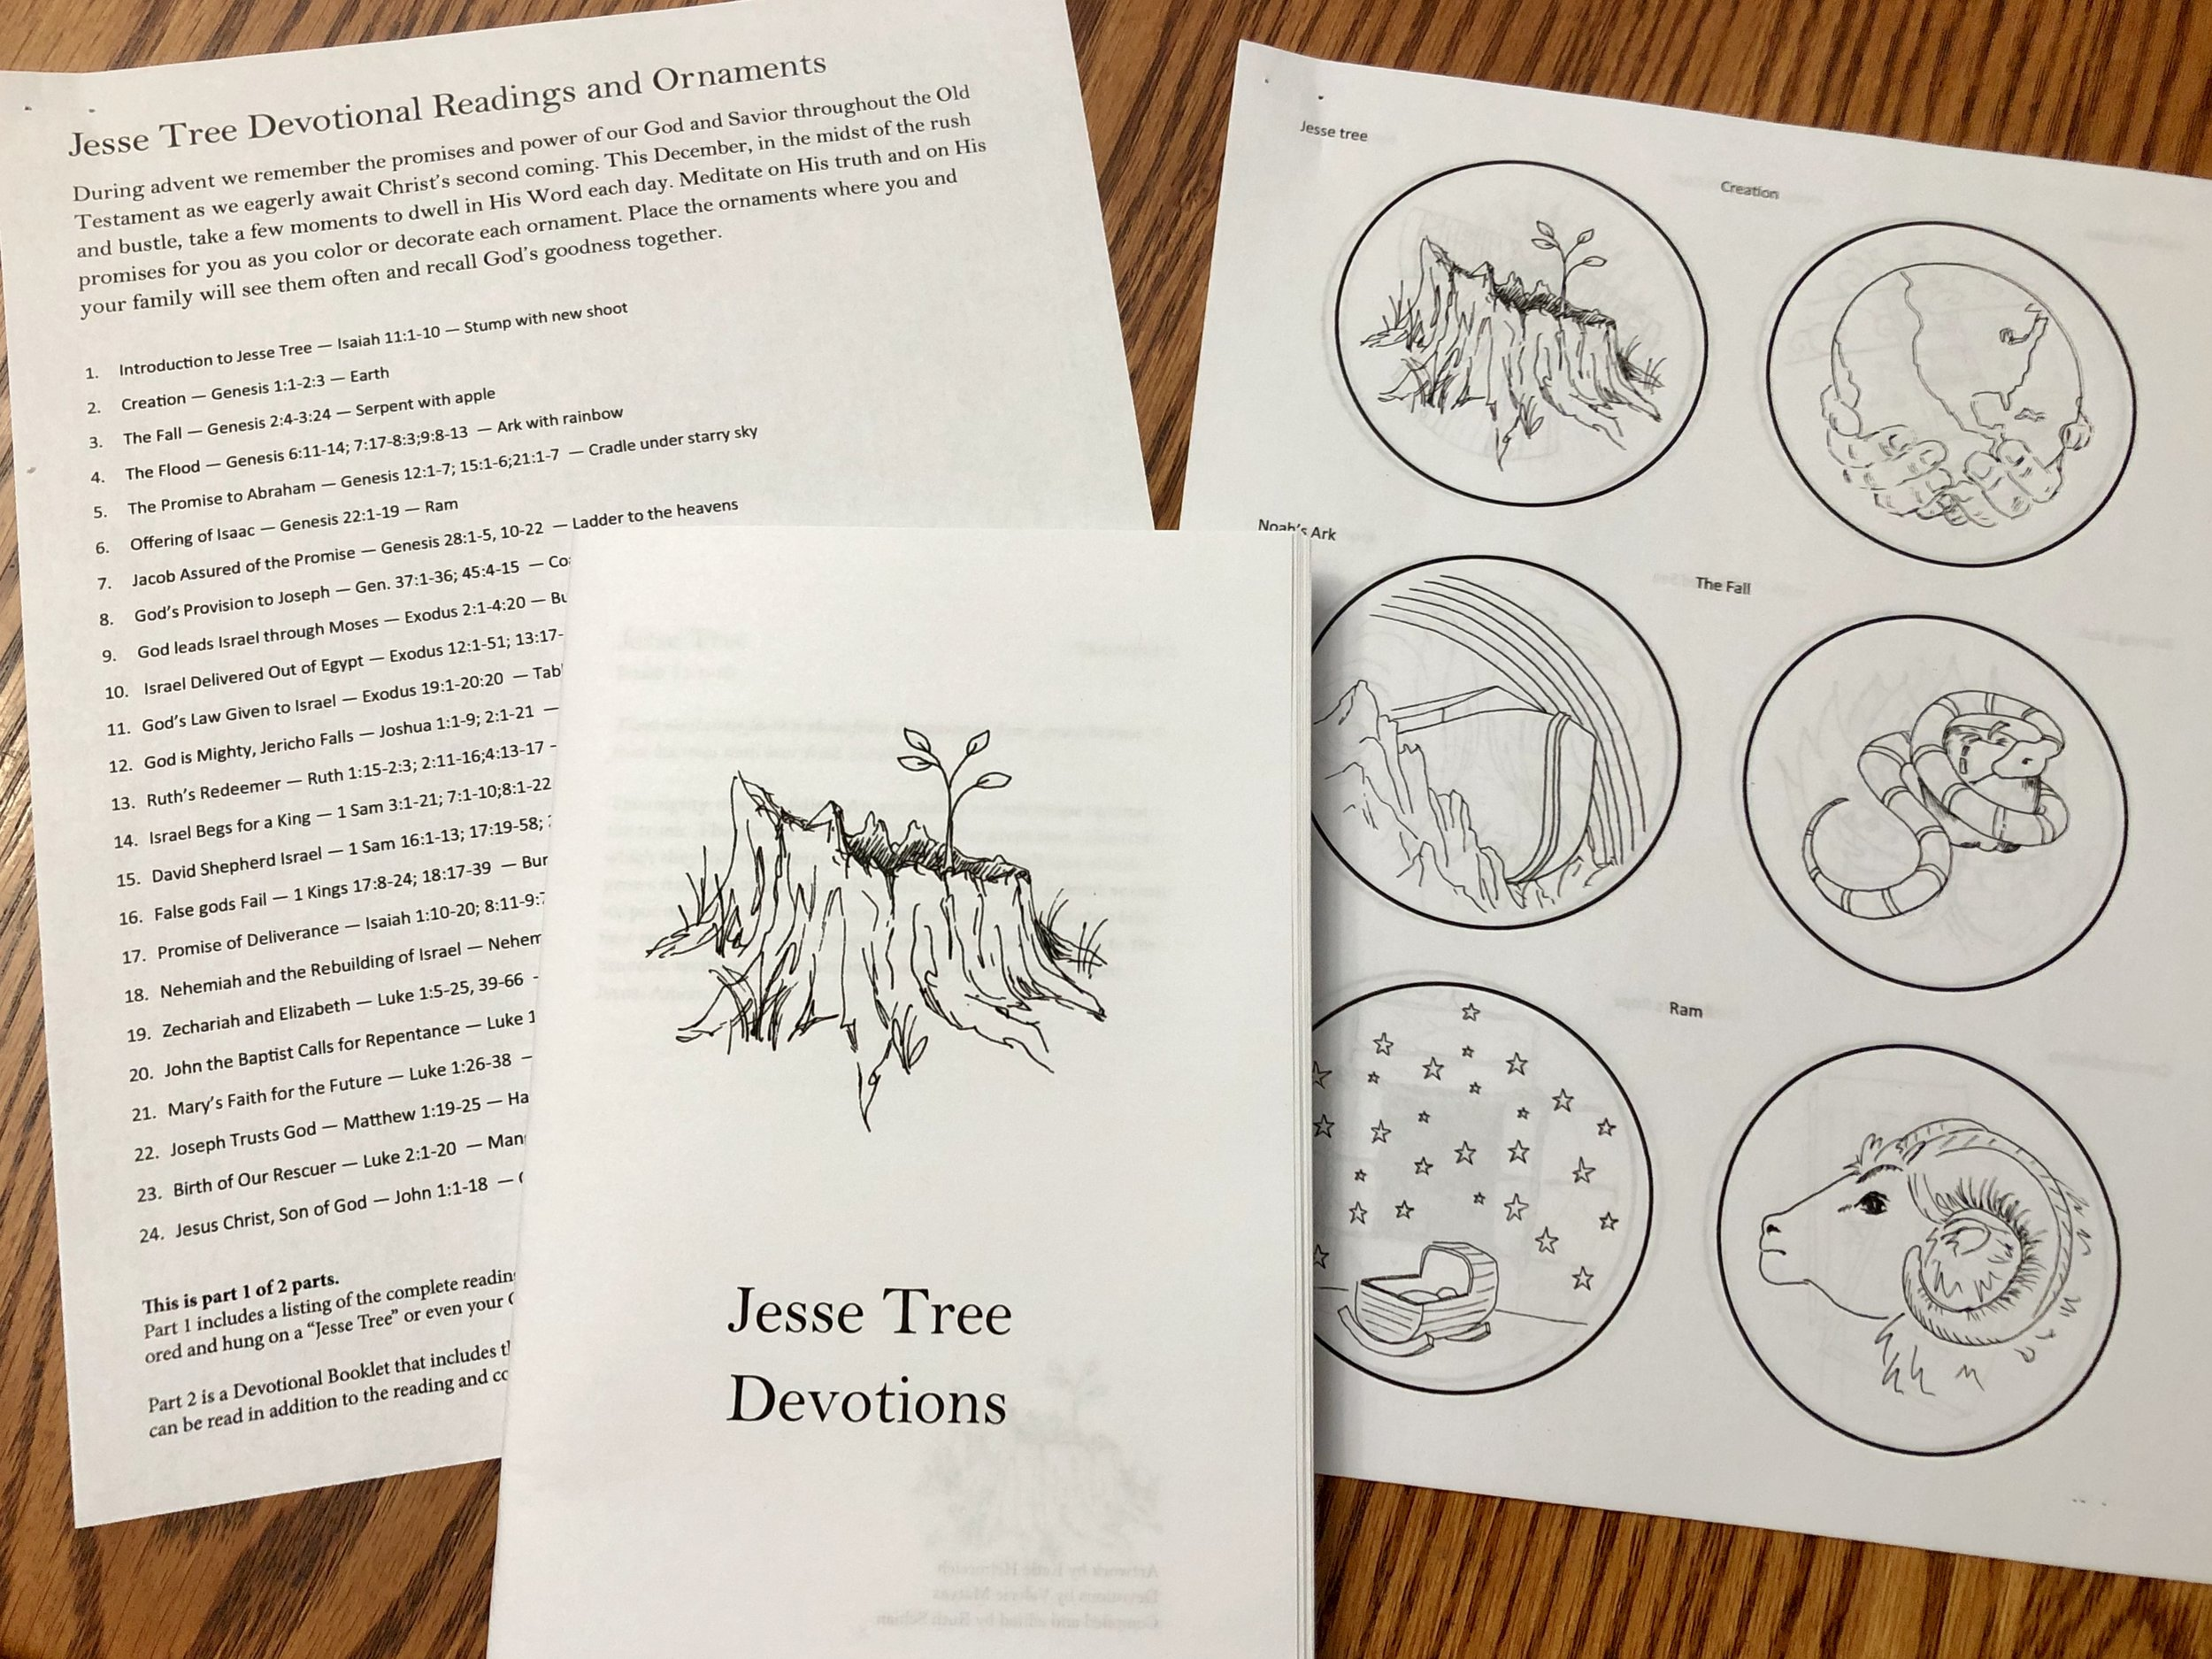 Jesse Tree Devotional Readings, Devotions, and Ornaments to Color